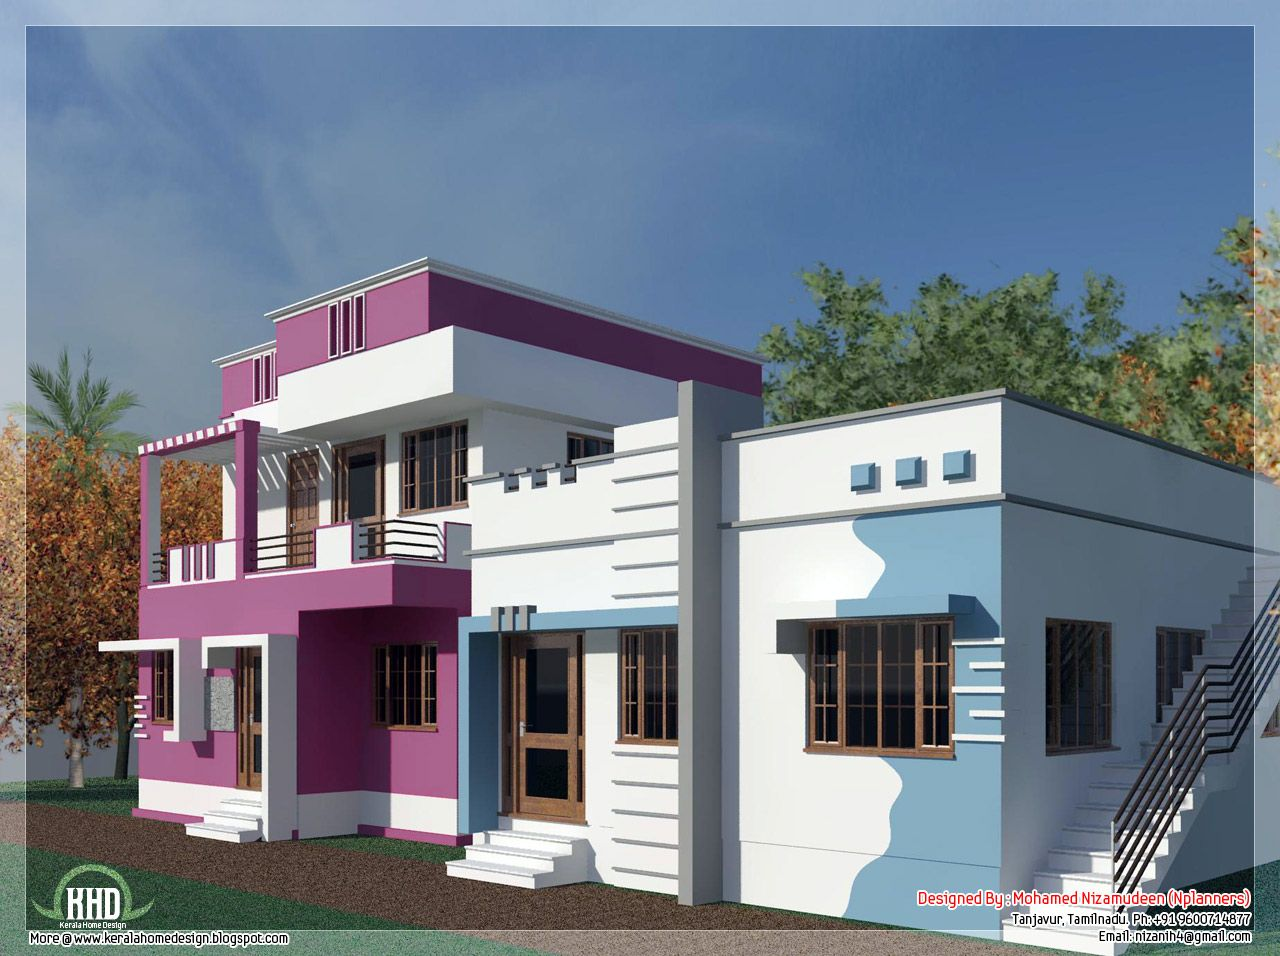 Tamilnadu Model Home Design In 3000 Sq.feet   Kerala Home Design .